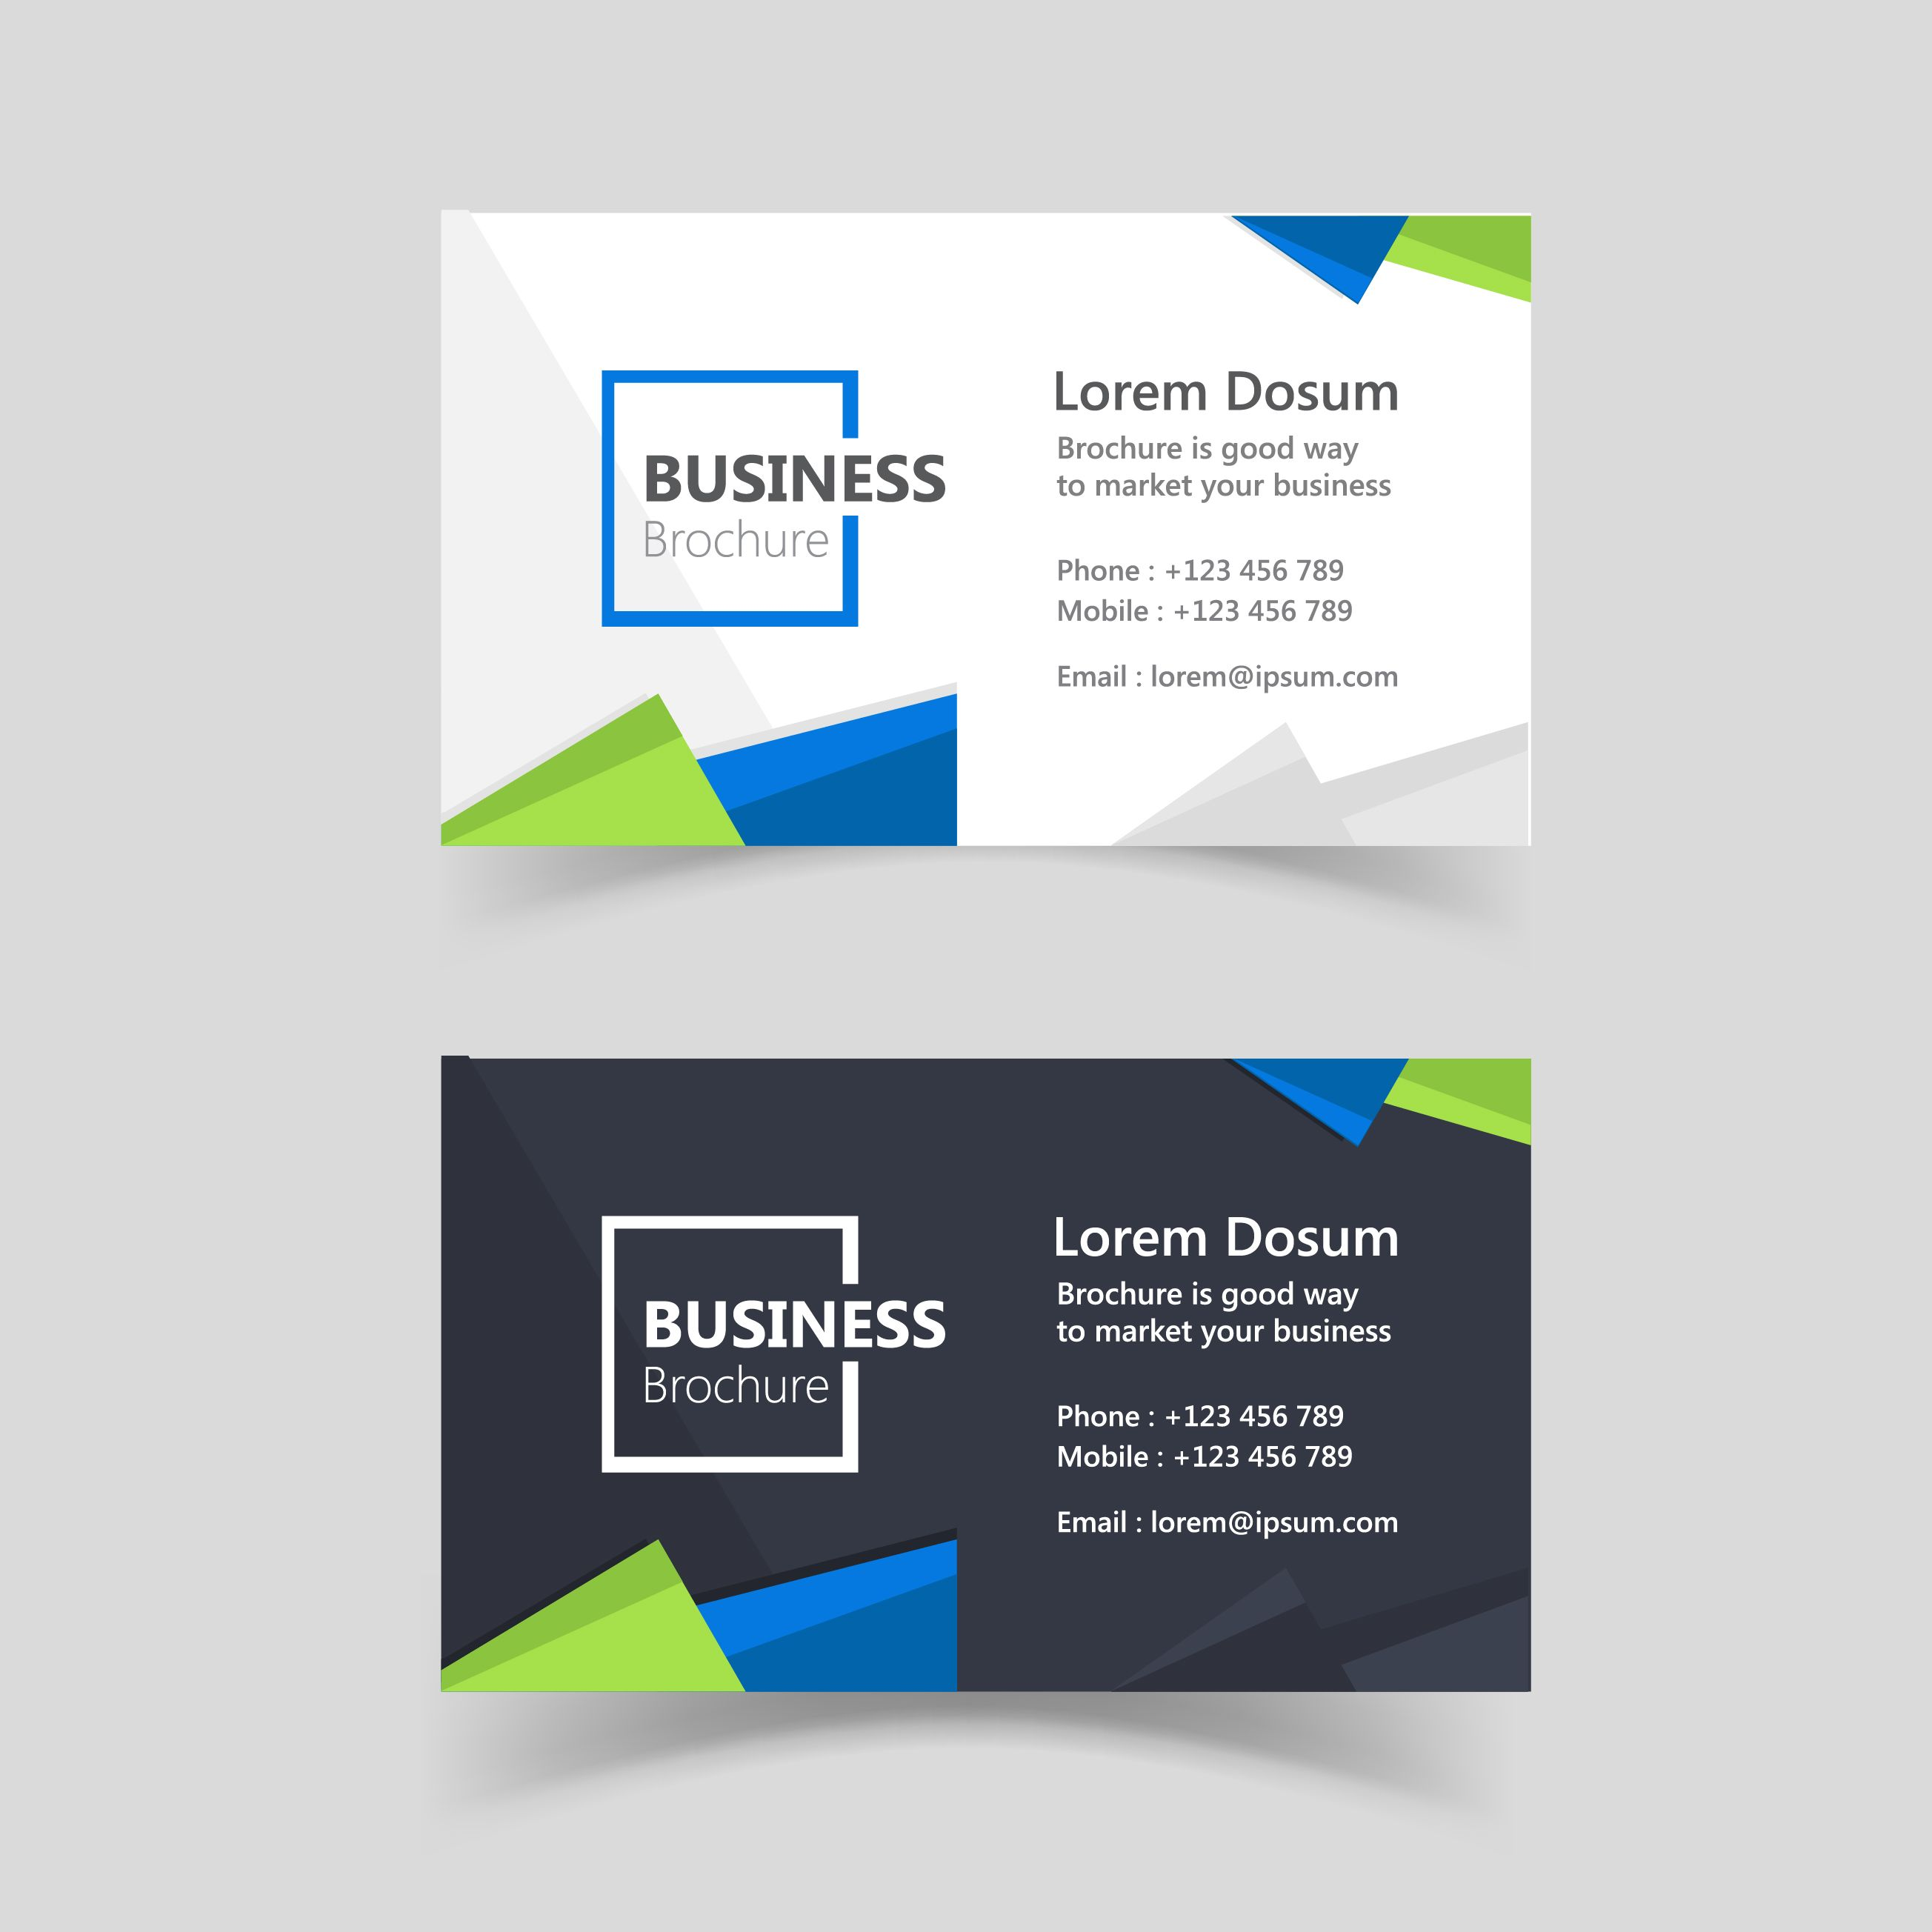 Corporate visiting card design vector free download free vector corporate visiting card design vector free download free vector design graphics download set of 2 corporate visiting card design vectors with blue and colourmoves